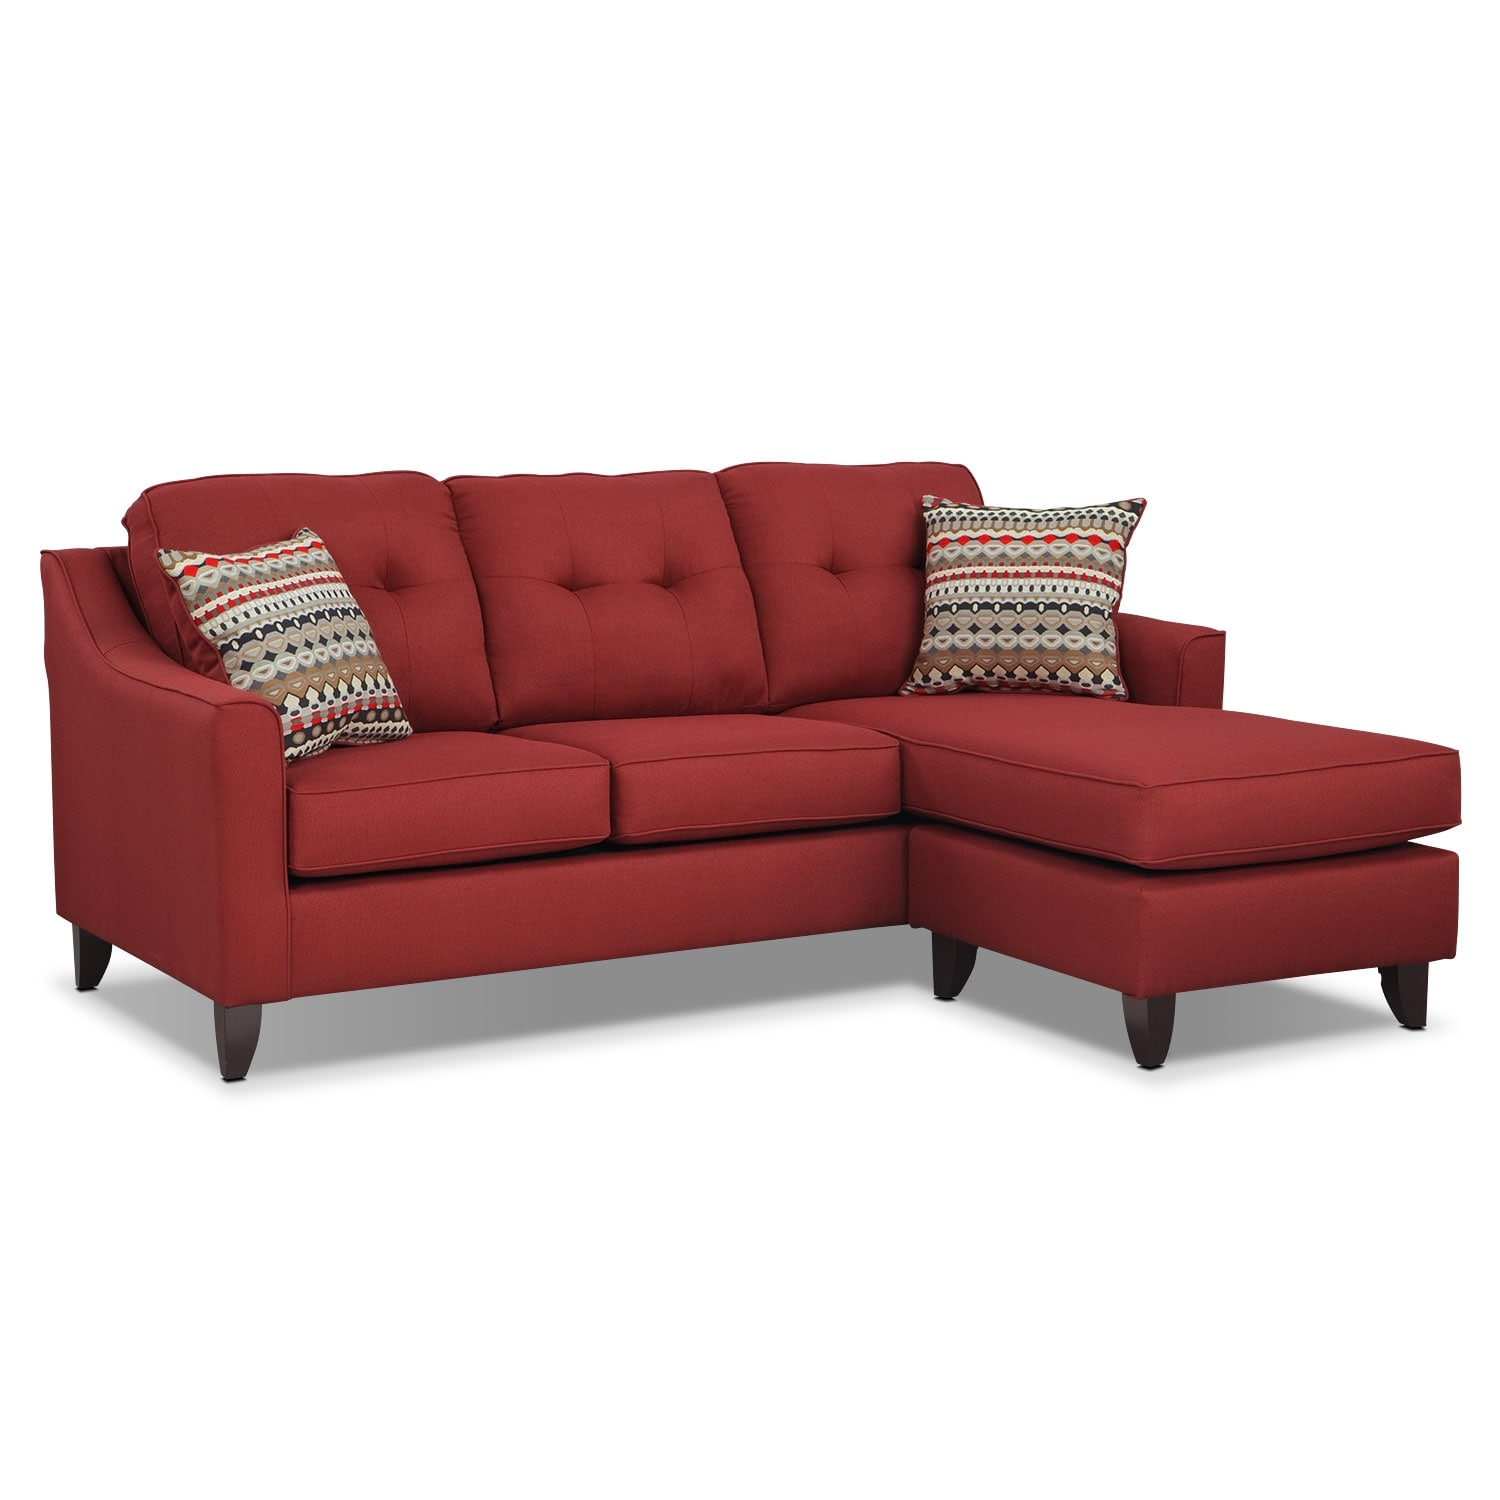 Marco Red Chaise Sofa  Value City Furniture